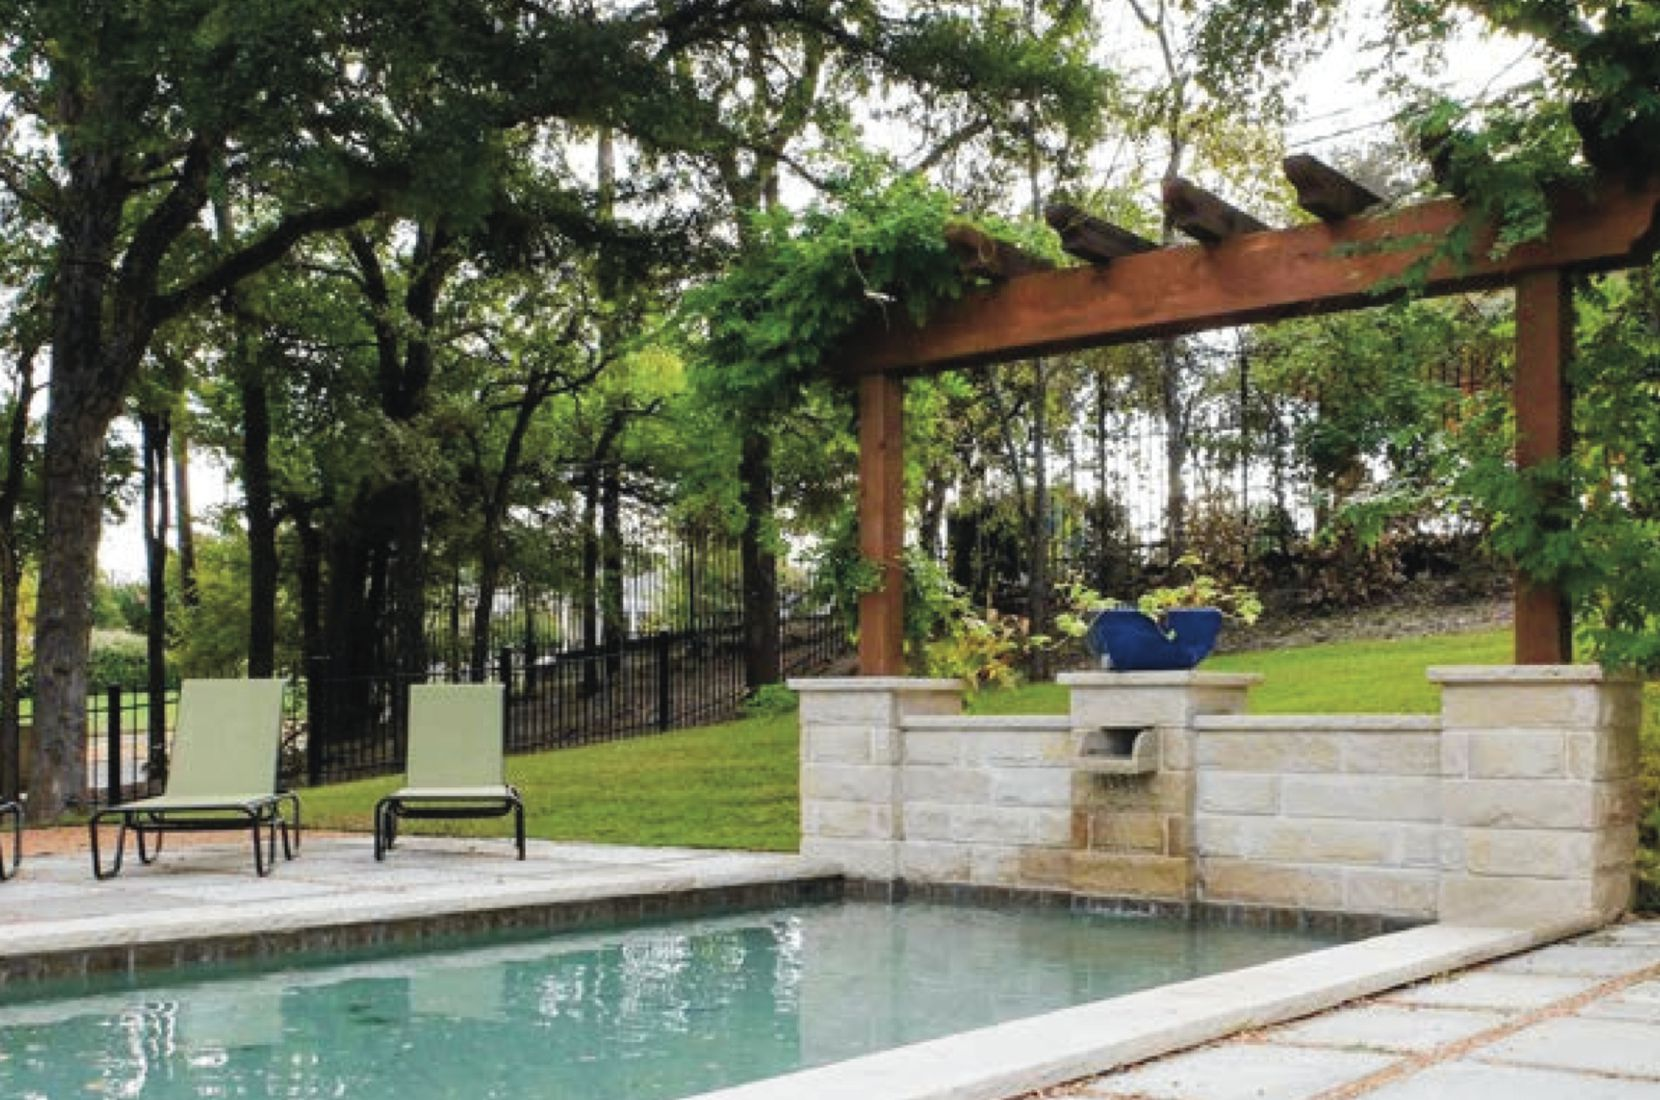 Built in 1969, The Zeke has a new community center, pool and other upgrades.